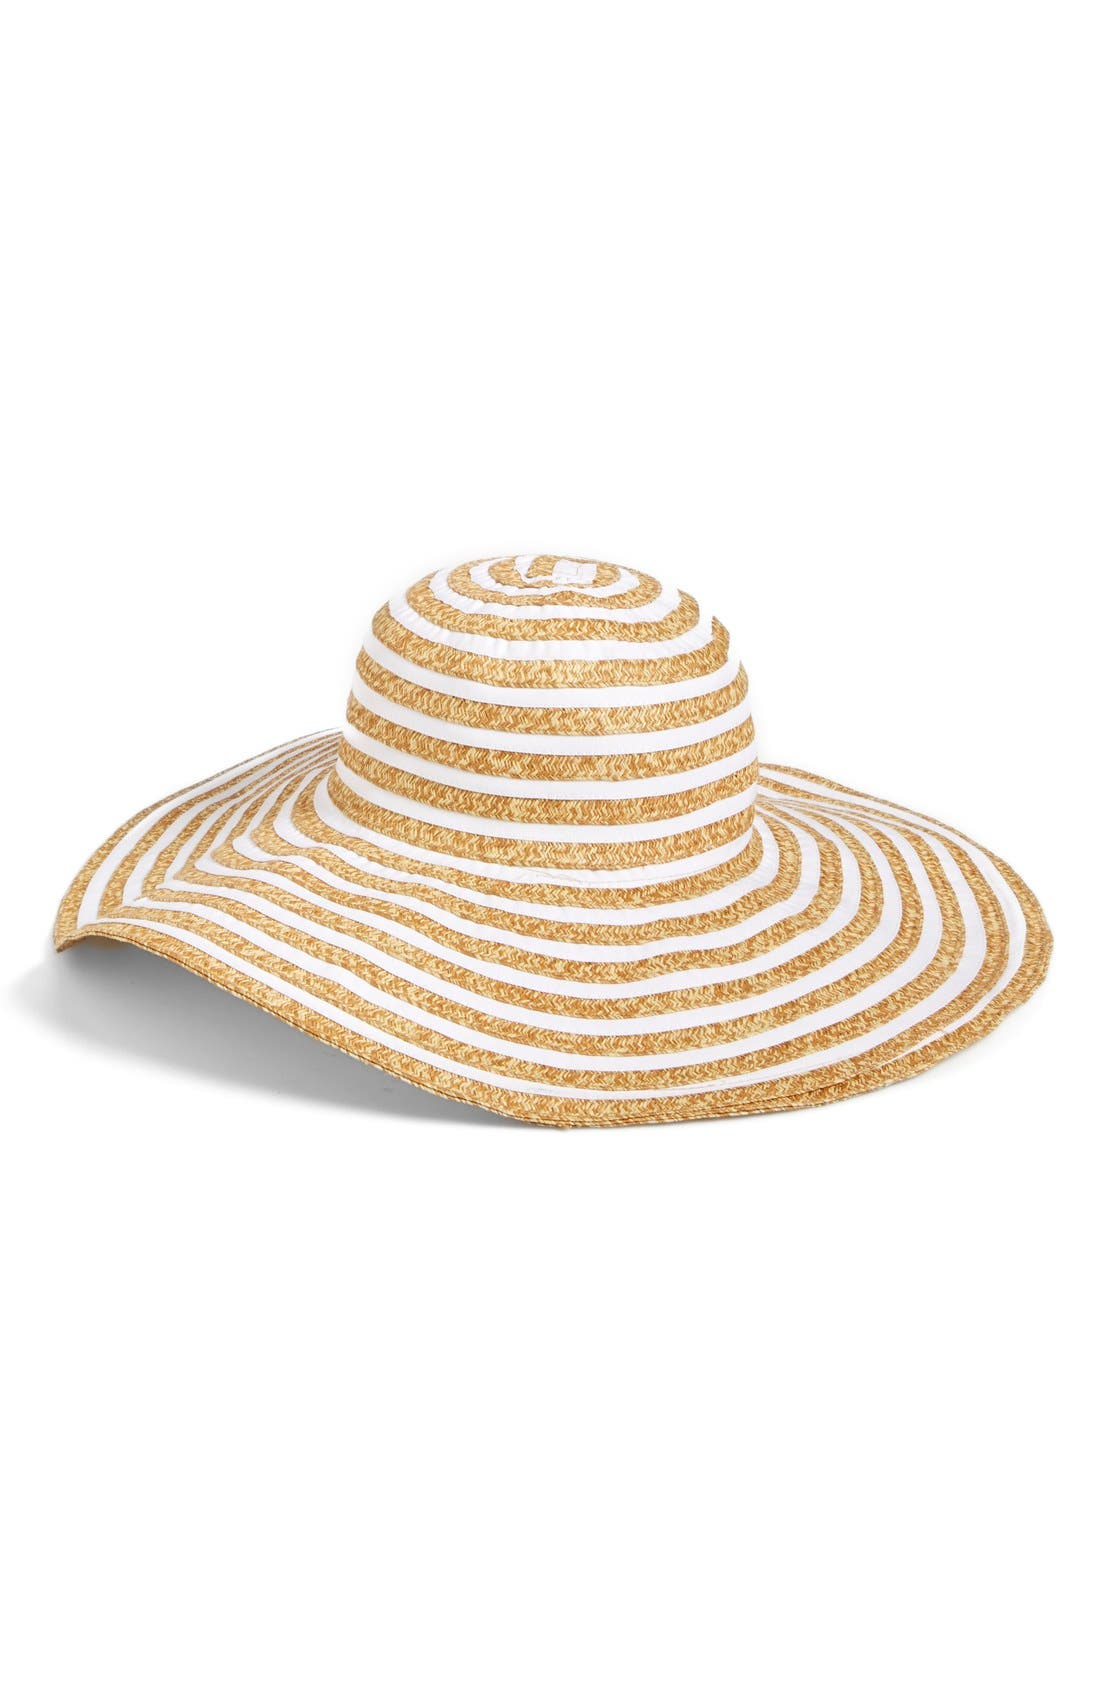 Alternate Image 1 Selected - August Hat 'Mix It Up' Floppy Straw Hat